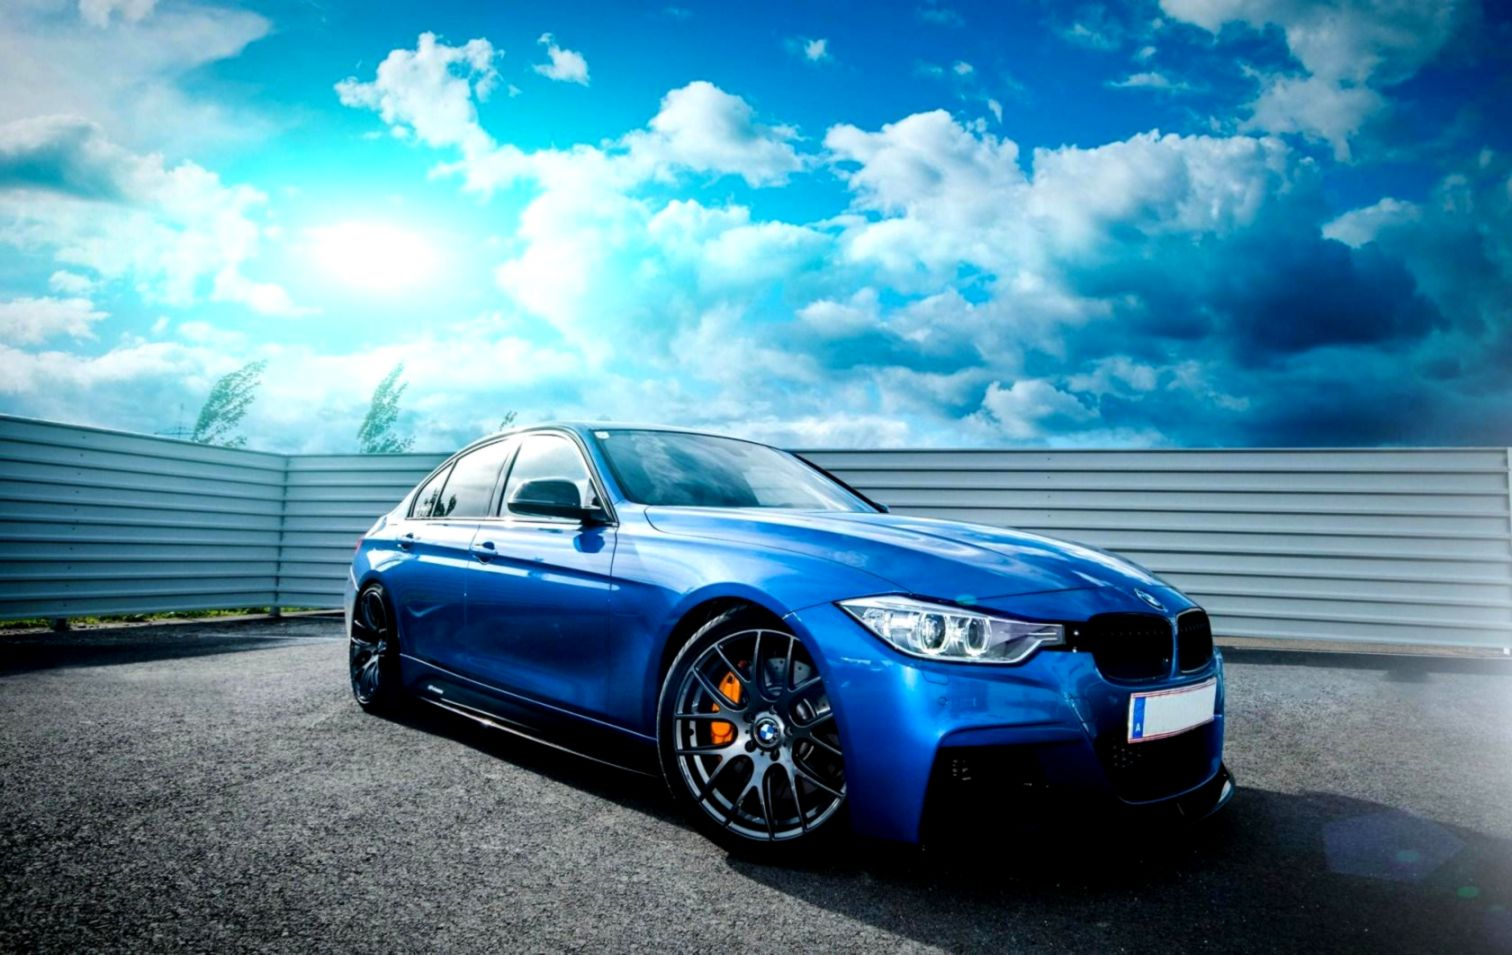 Bmw F30 335i Car Wheels Tuning Hd Wallpaper Elegant Wallpapers